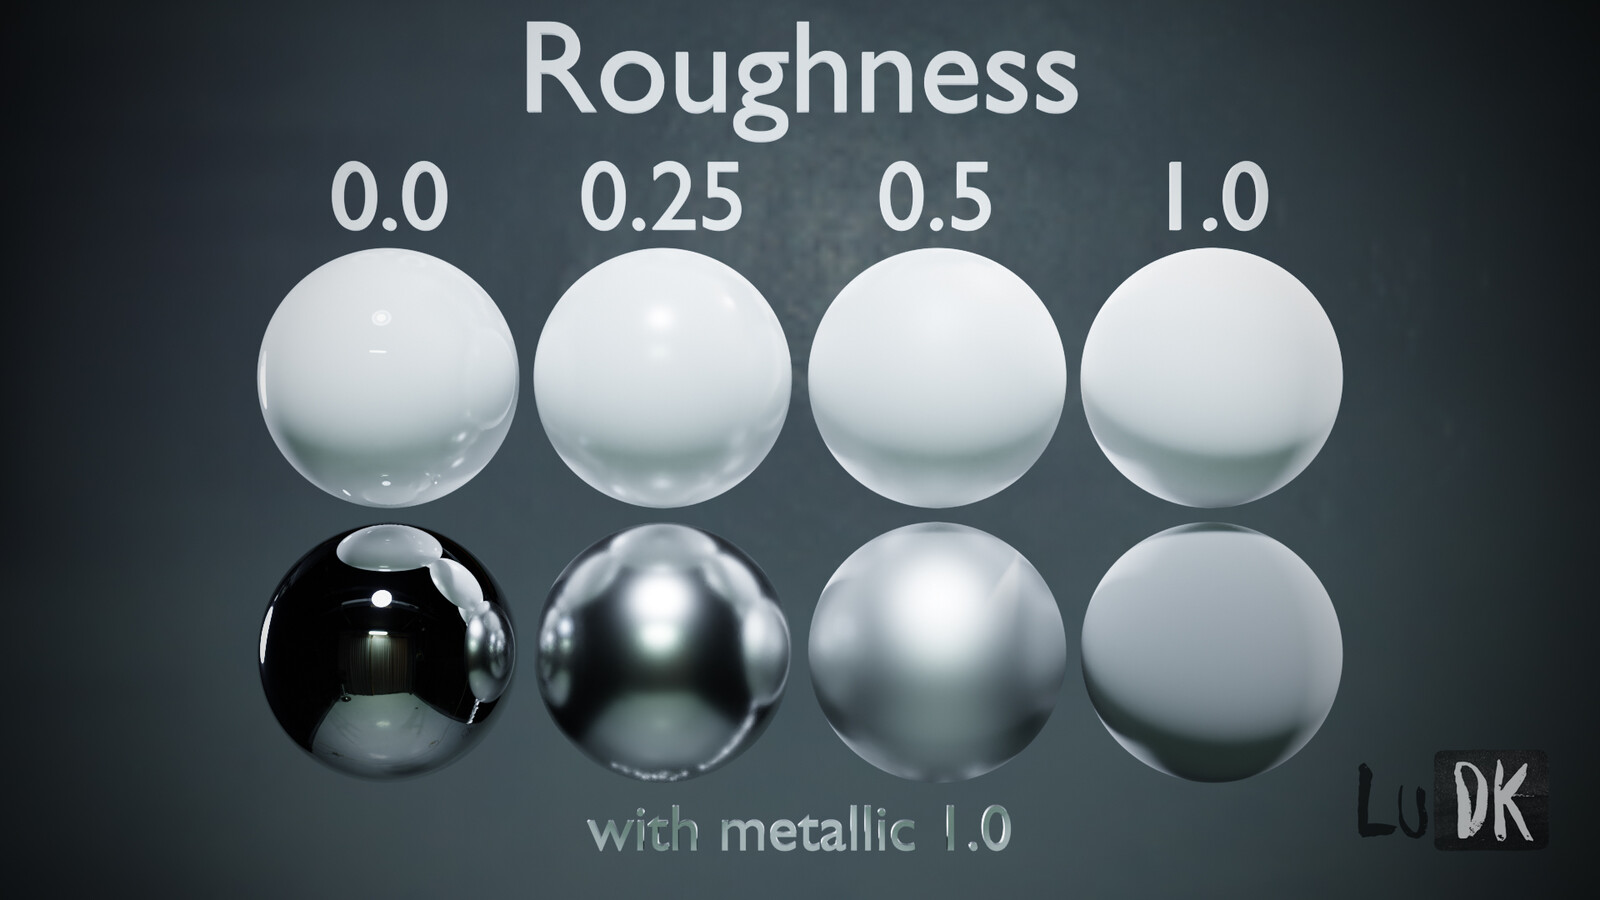 Roughness Visual Comparison - Working with #PBR (Physically-Based Rendering) materials